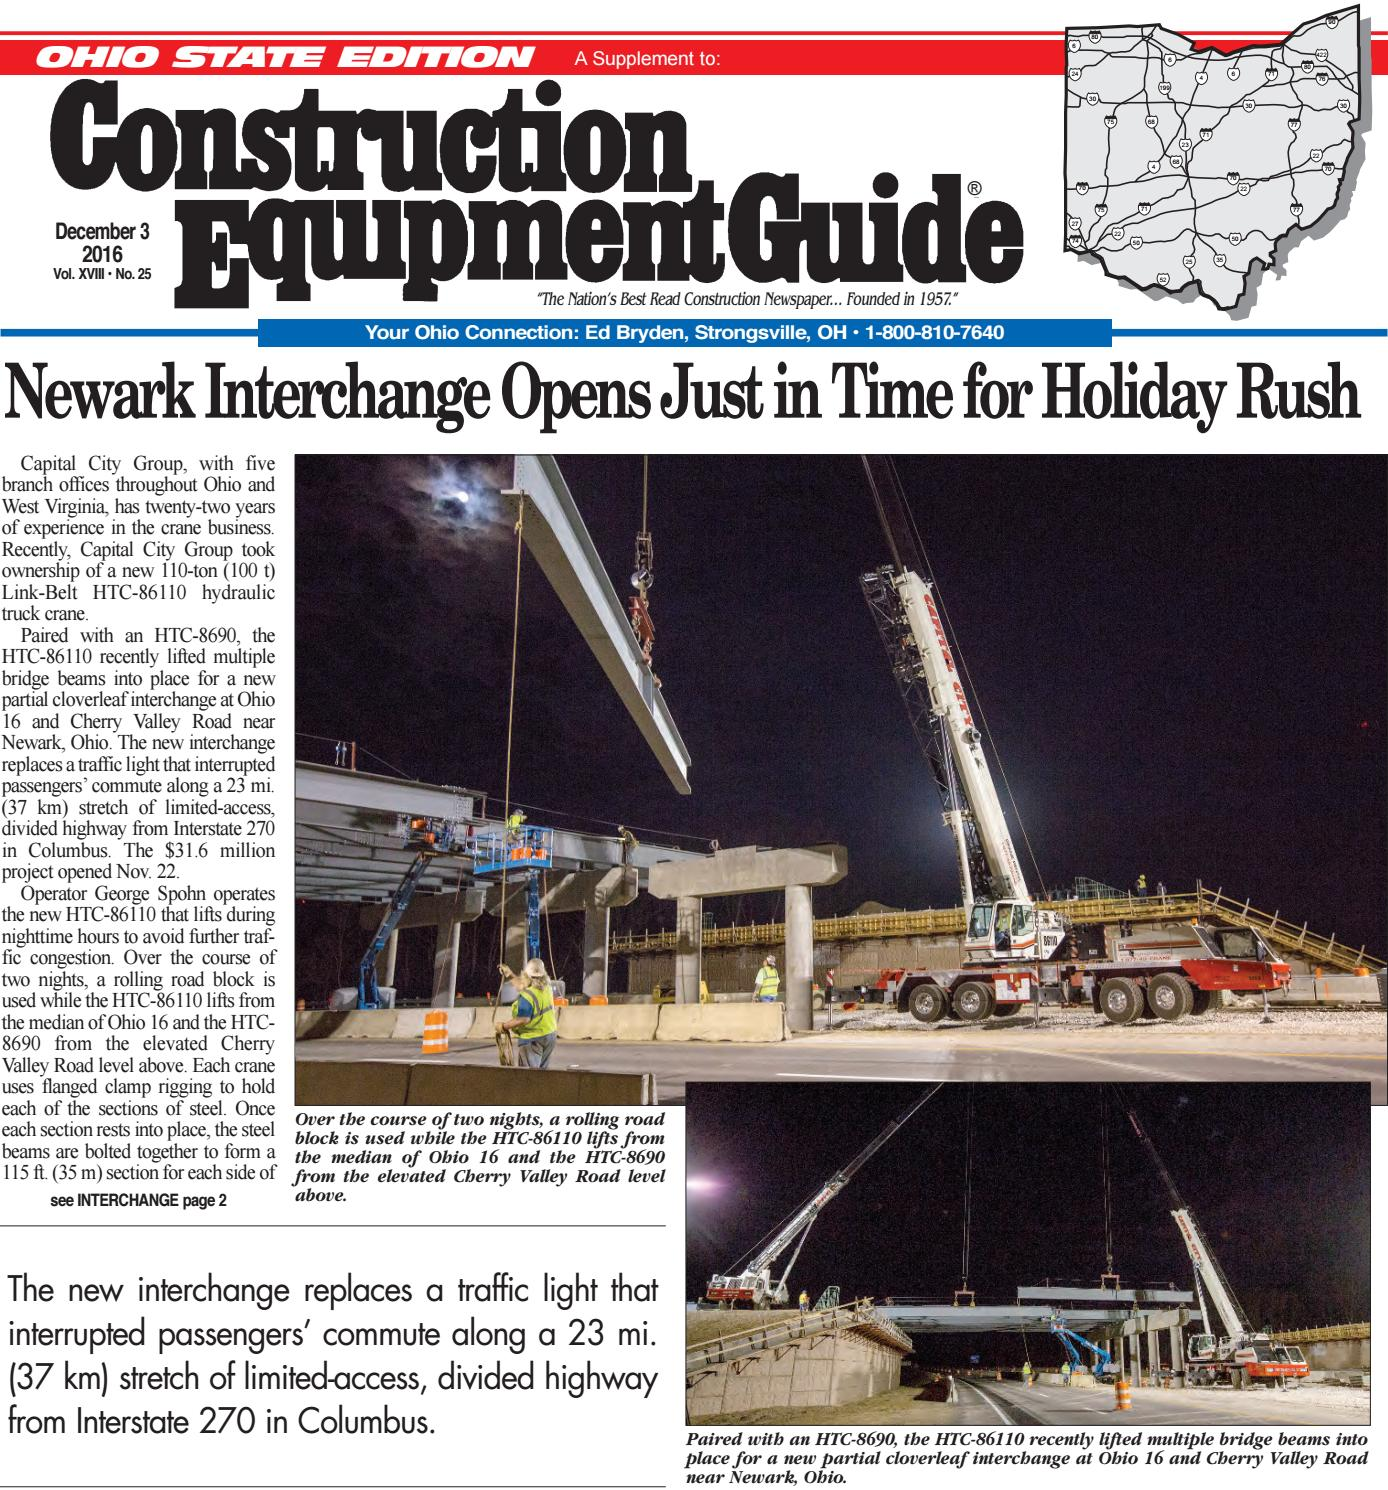 Ohio 25 December 3, 2016 by Construction Equipment Guide - issuu